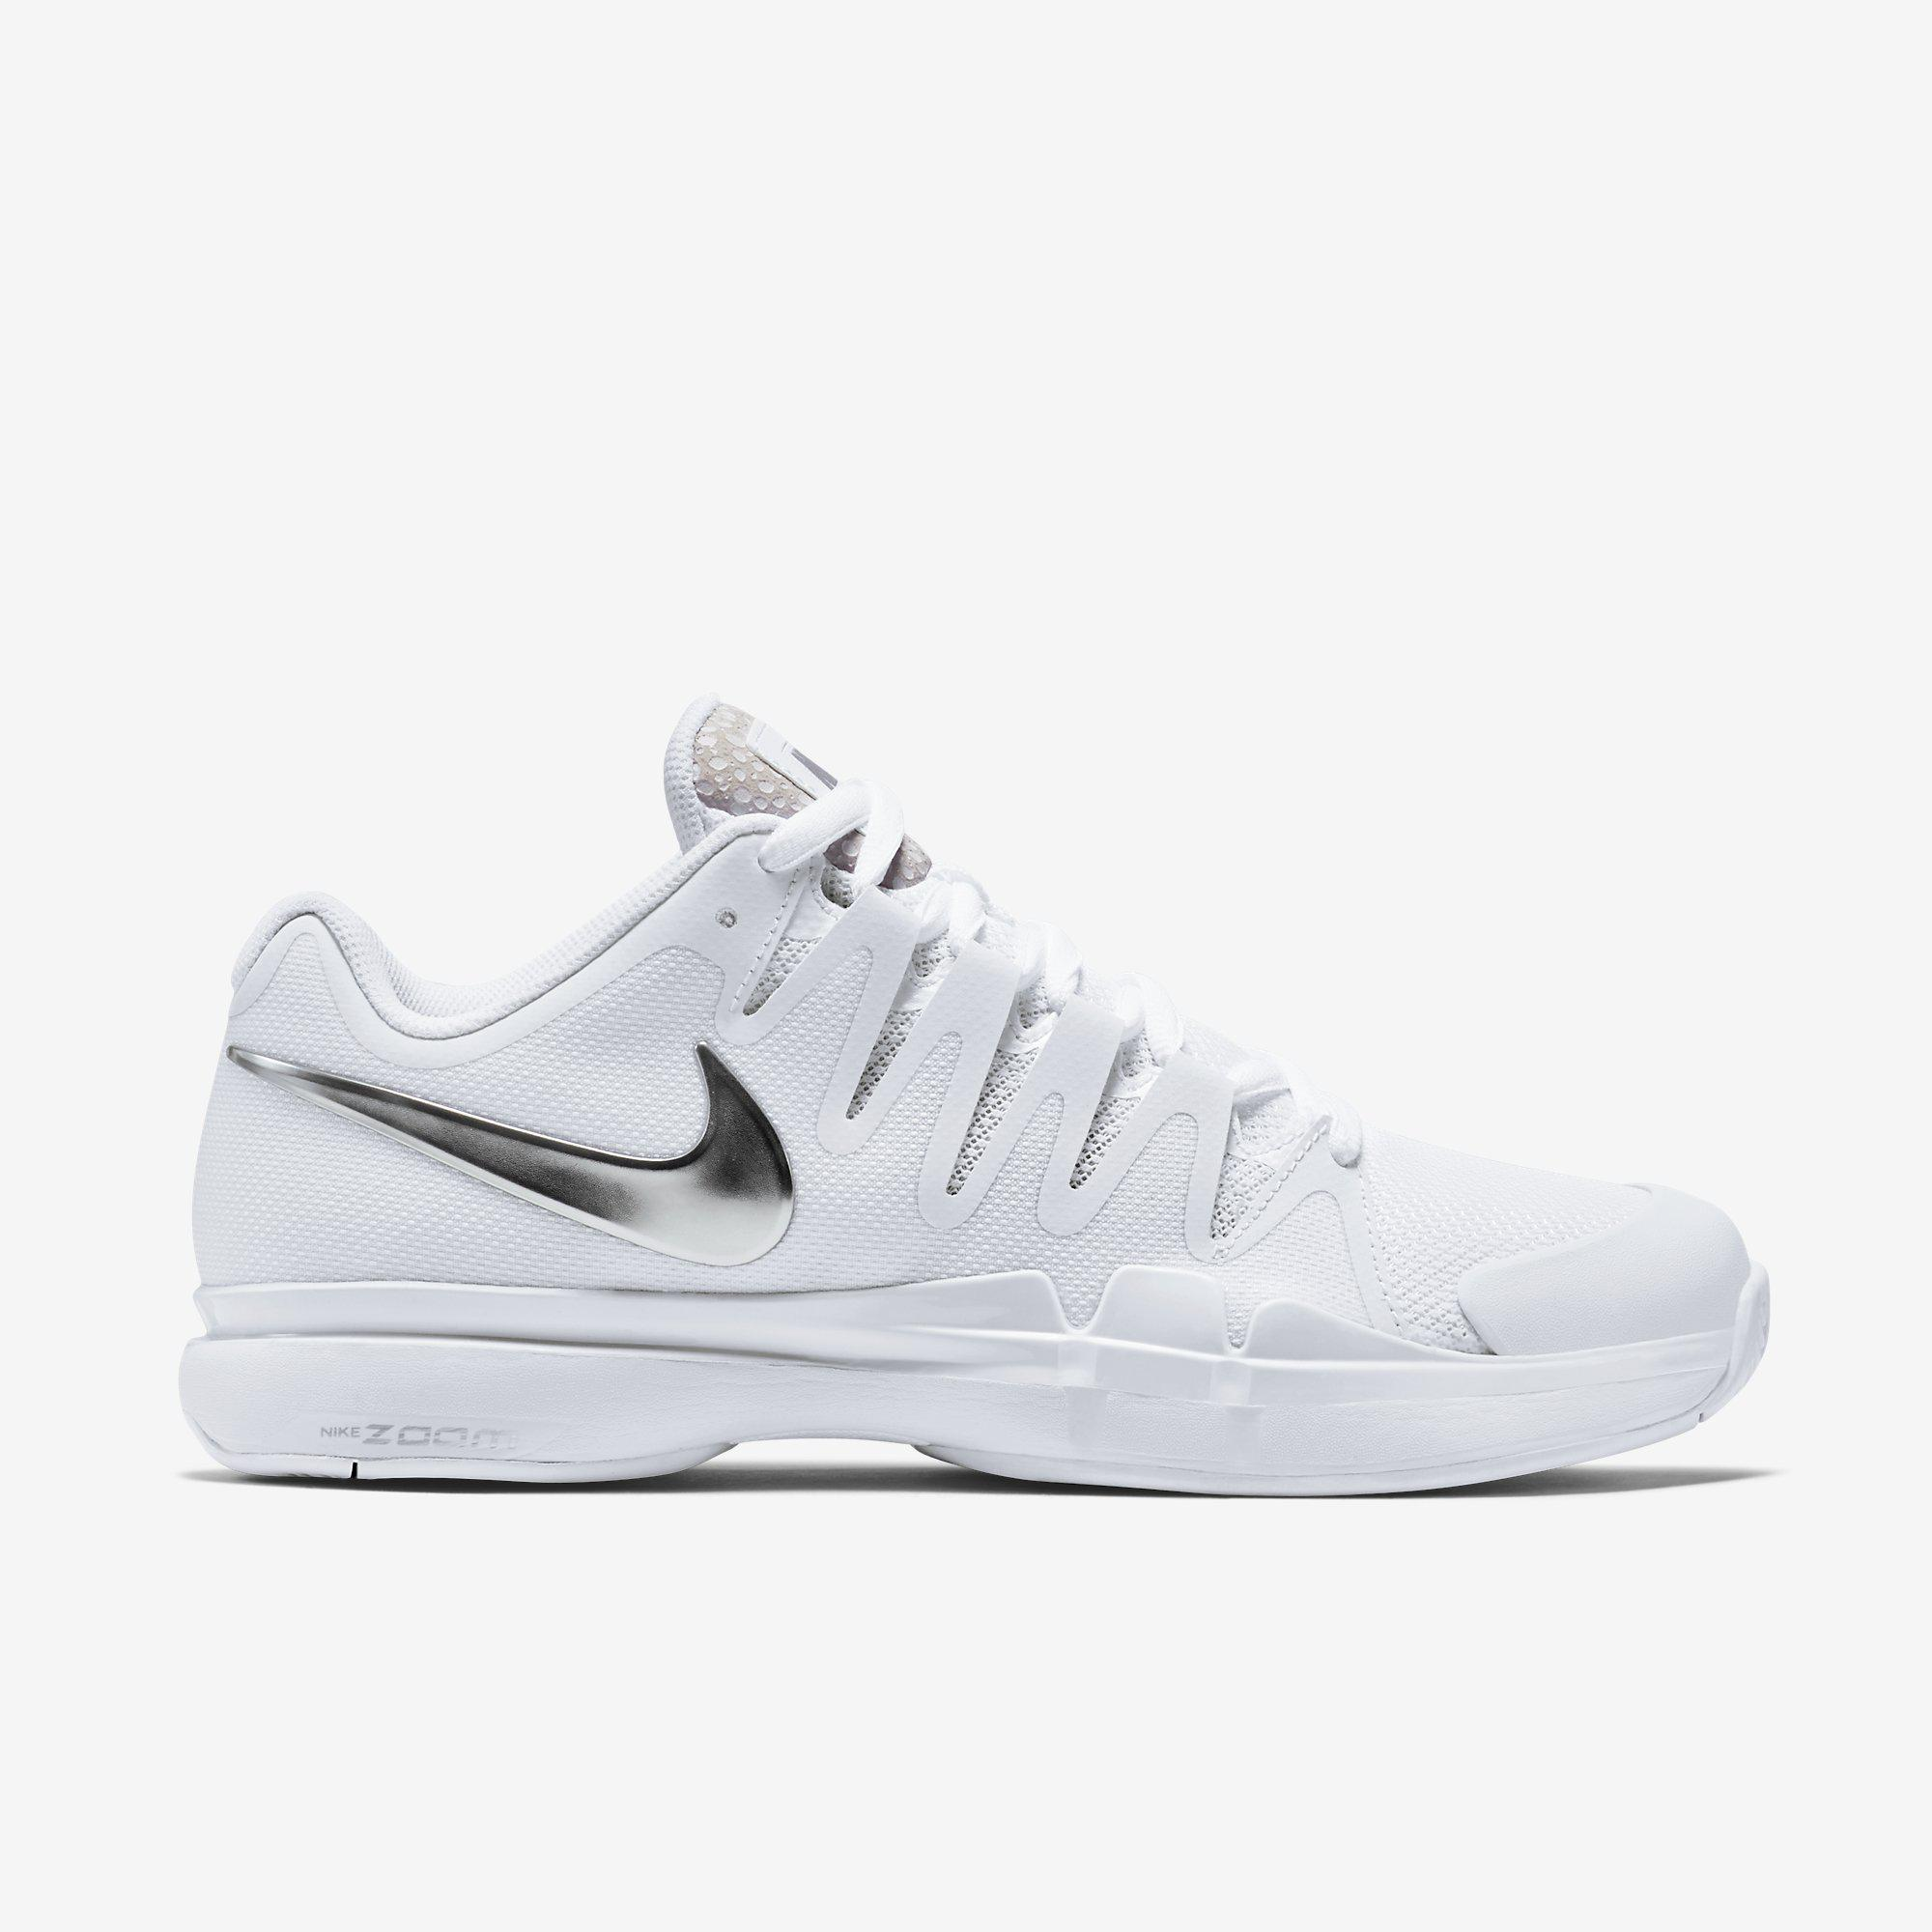 uk availability 322e2 3a839 Nike Mens Zoom Vapor 9.5 Tour Safari Tennis Shoes - White  Limited Edition   - Tennisnuts.com